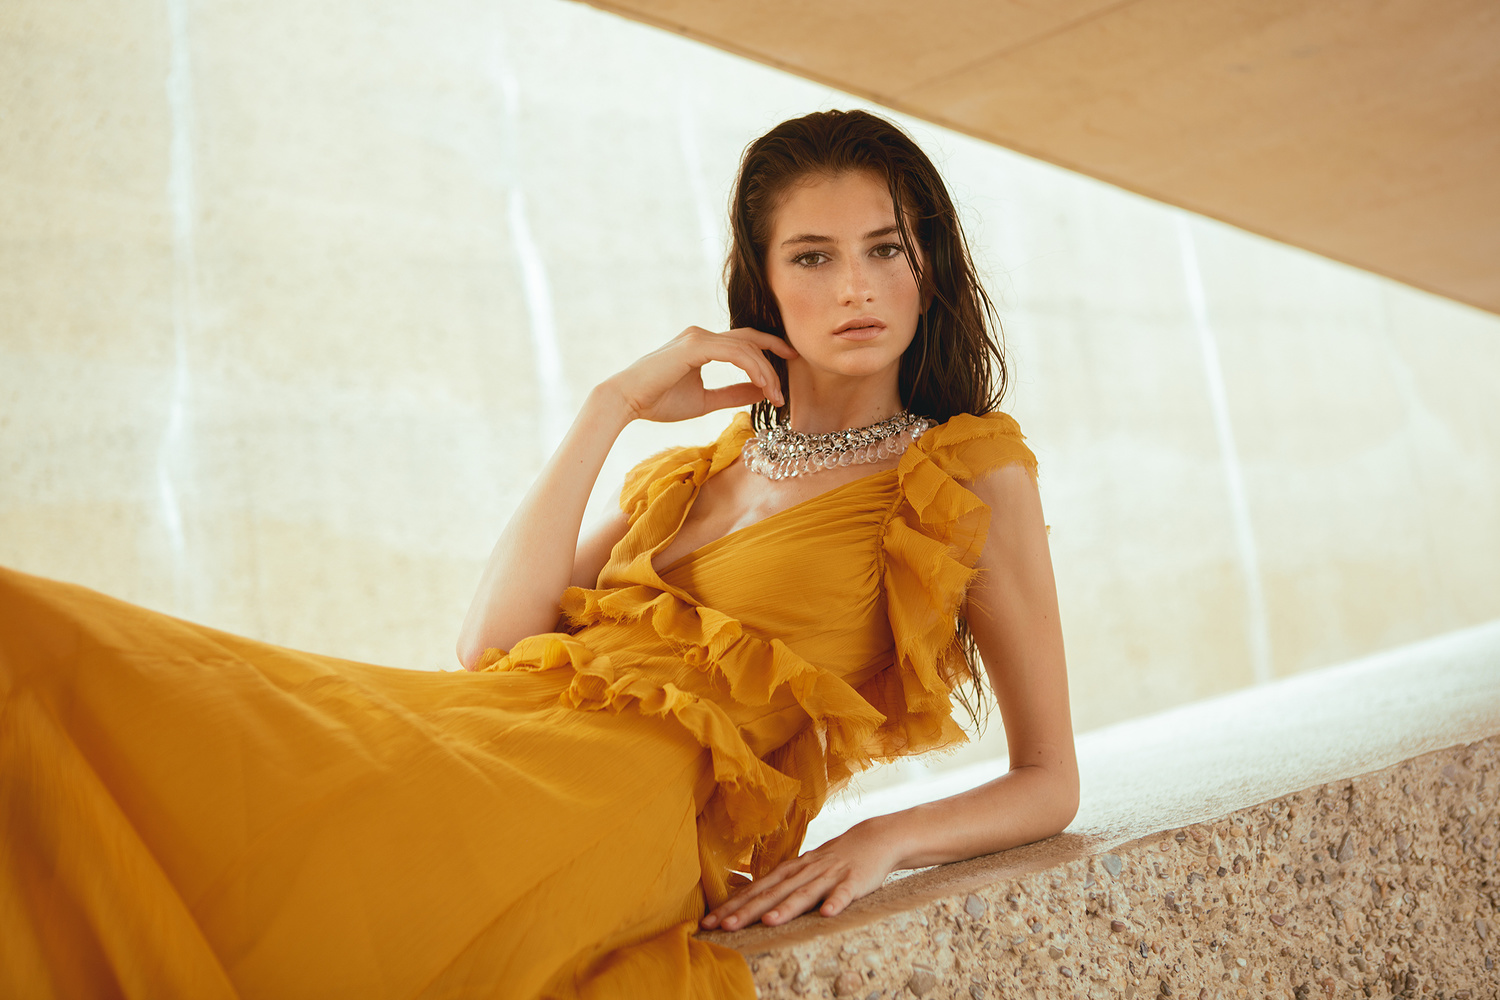 Orange Summer by Evely Duis